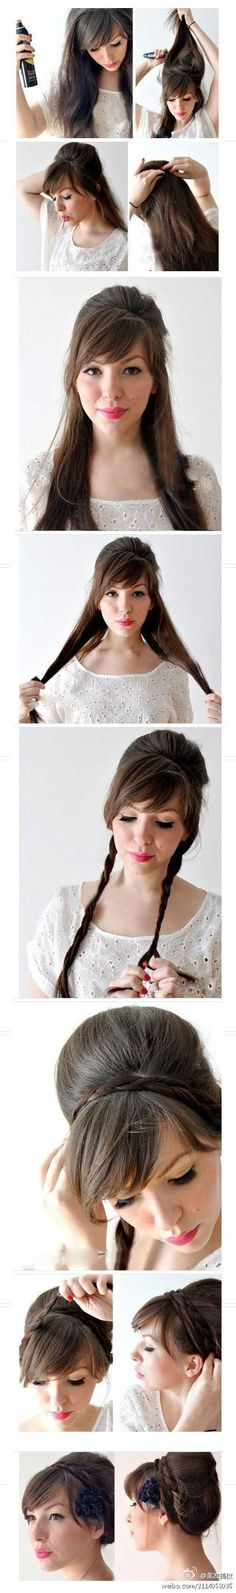 Forget the Retro Updo, I want her bangs